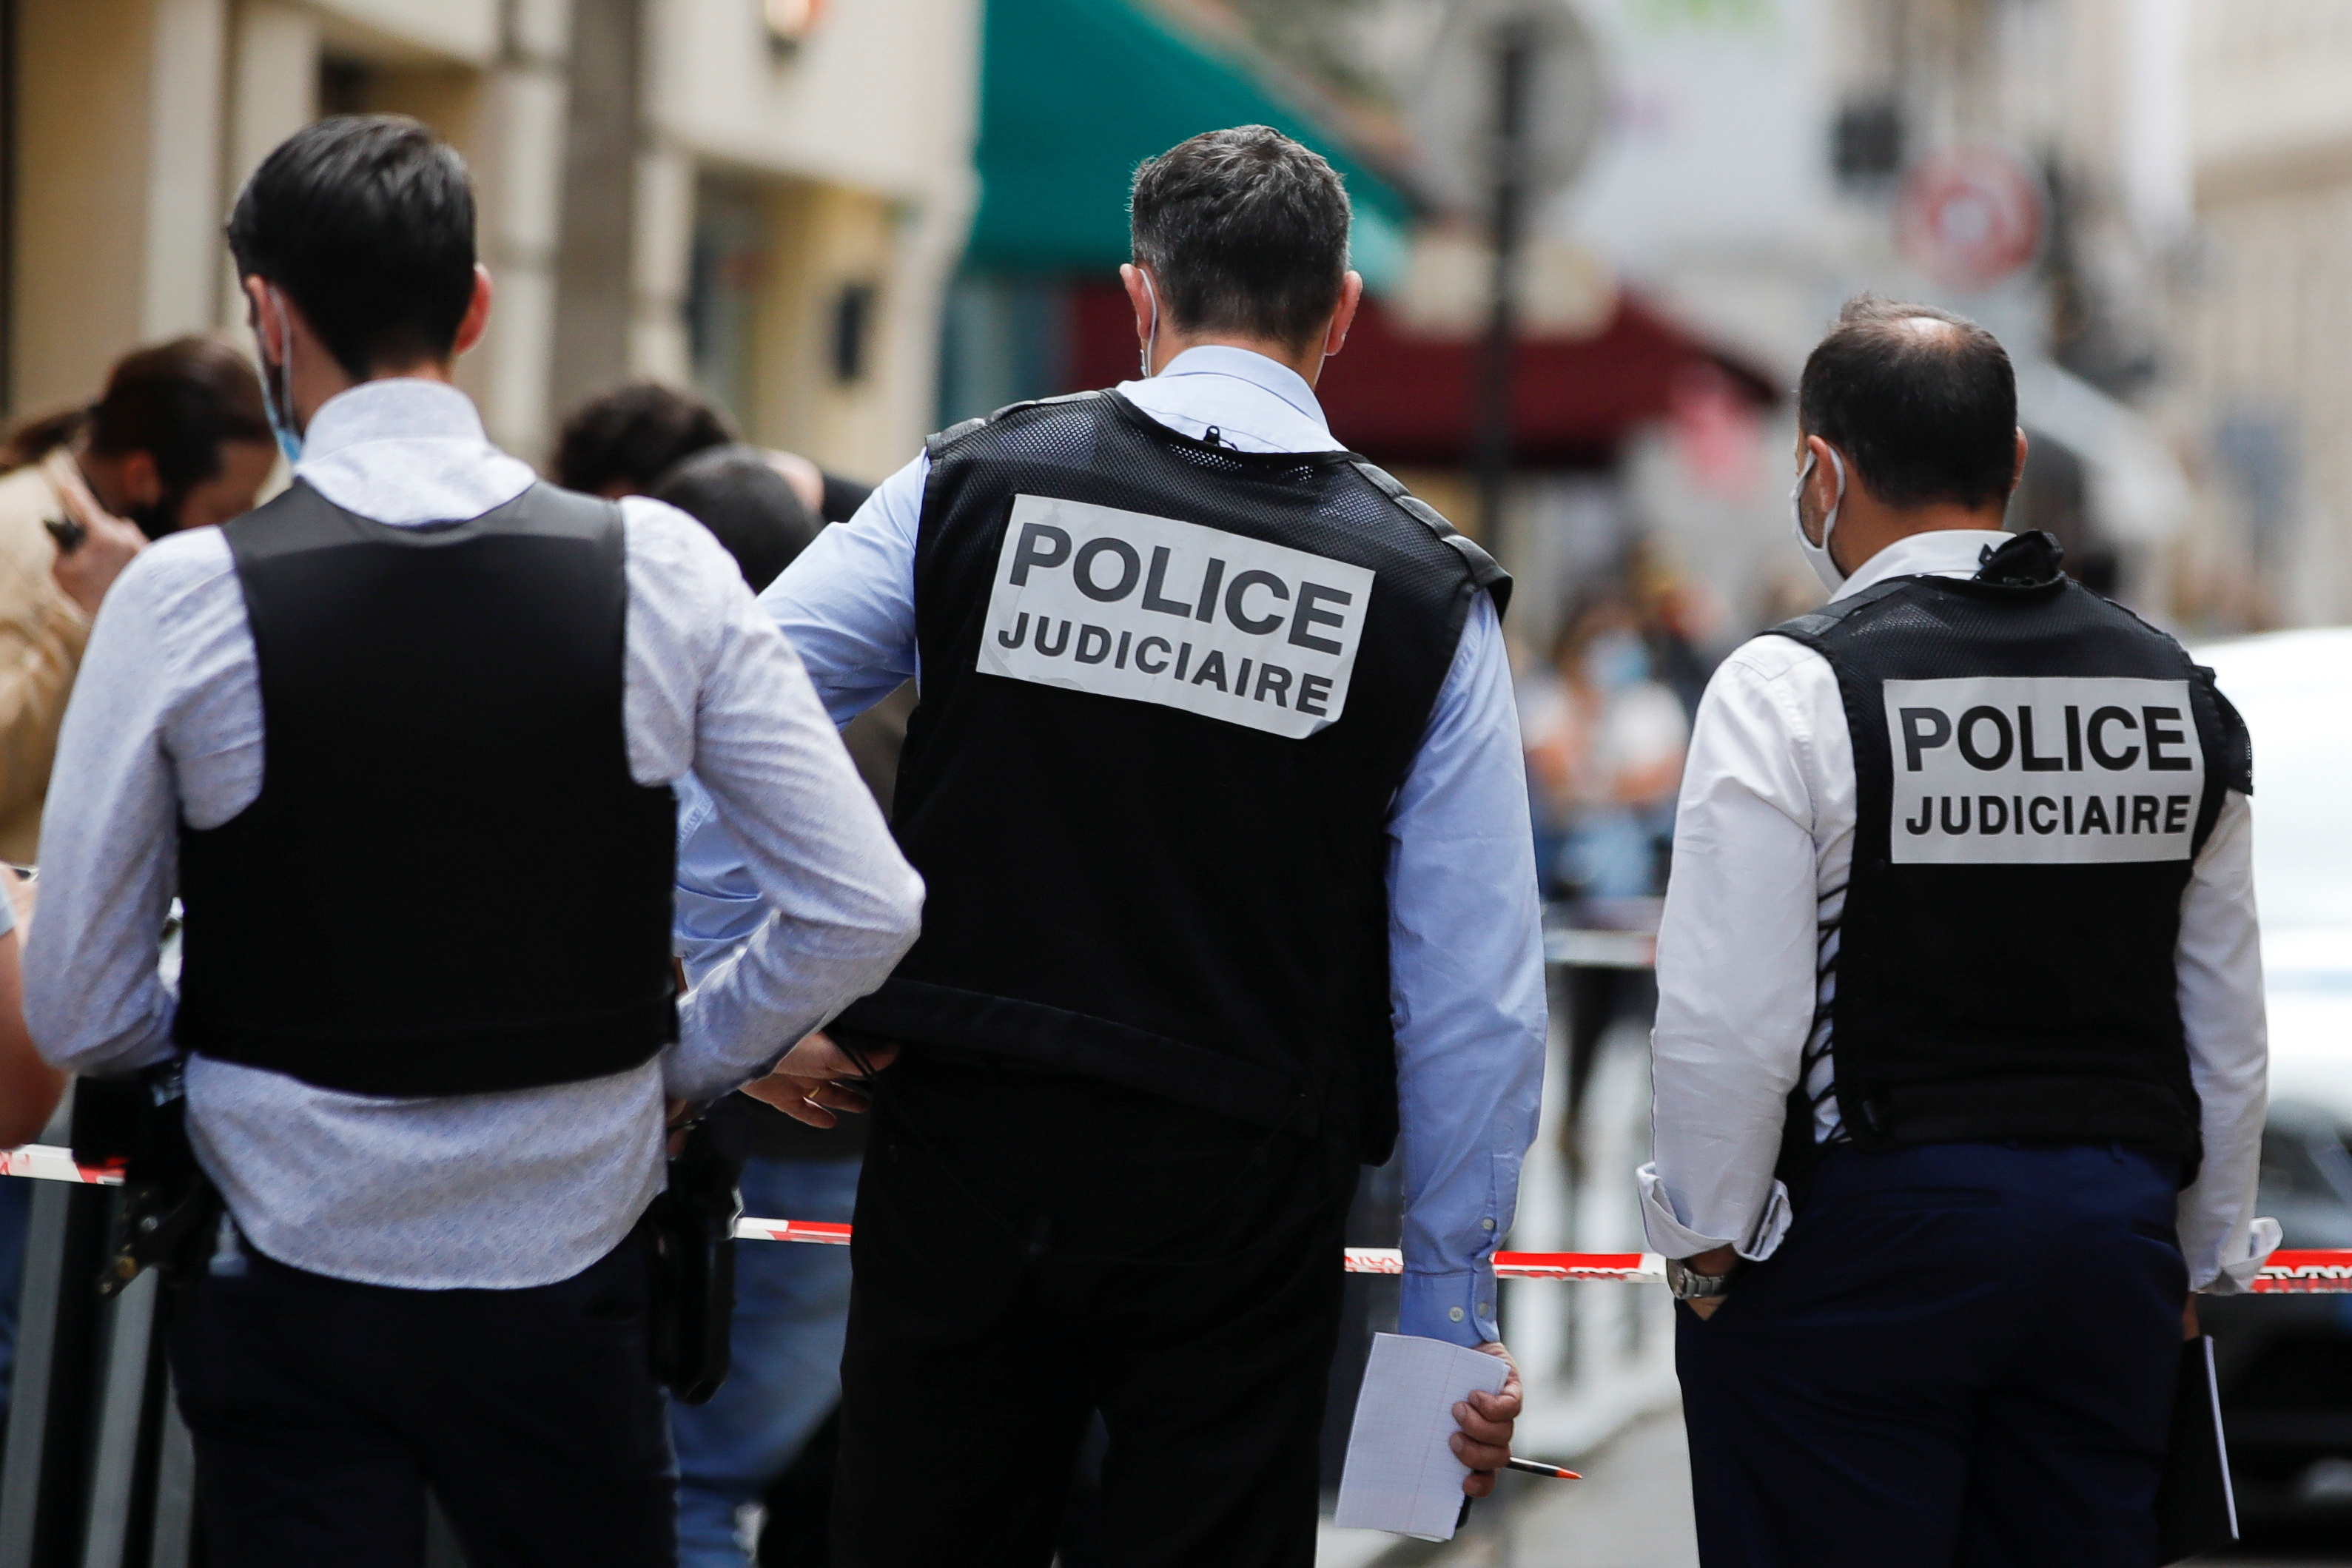 Police investigators stand next to Dinh Van jewelry store after a robbery in central Paris, France July 30, 2021. REUTERS/Sarah Meyssonnier